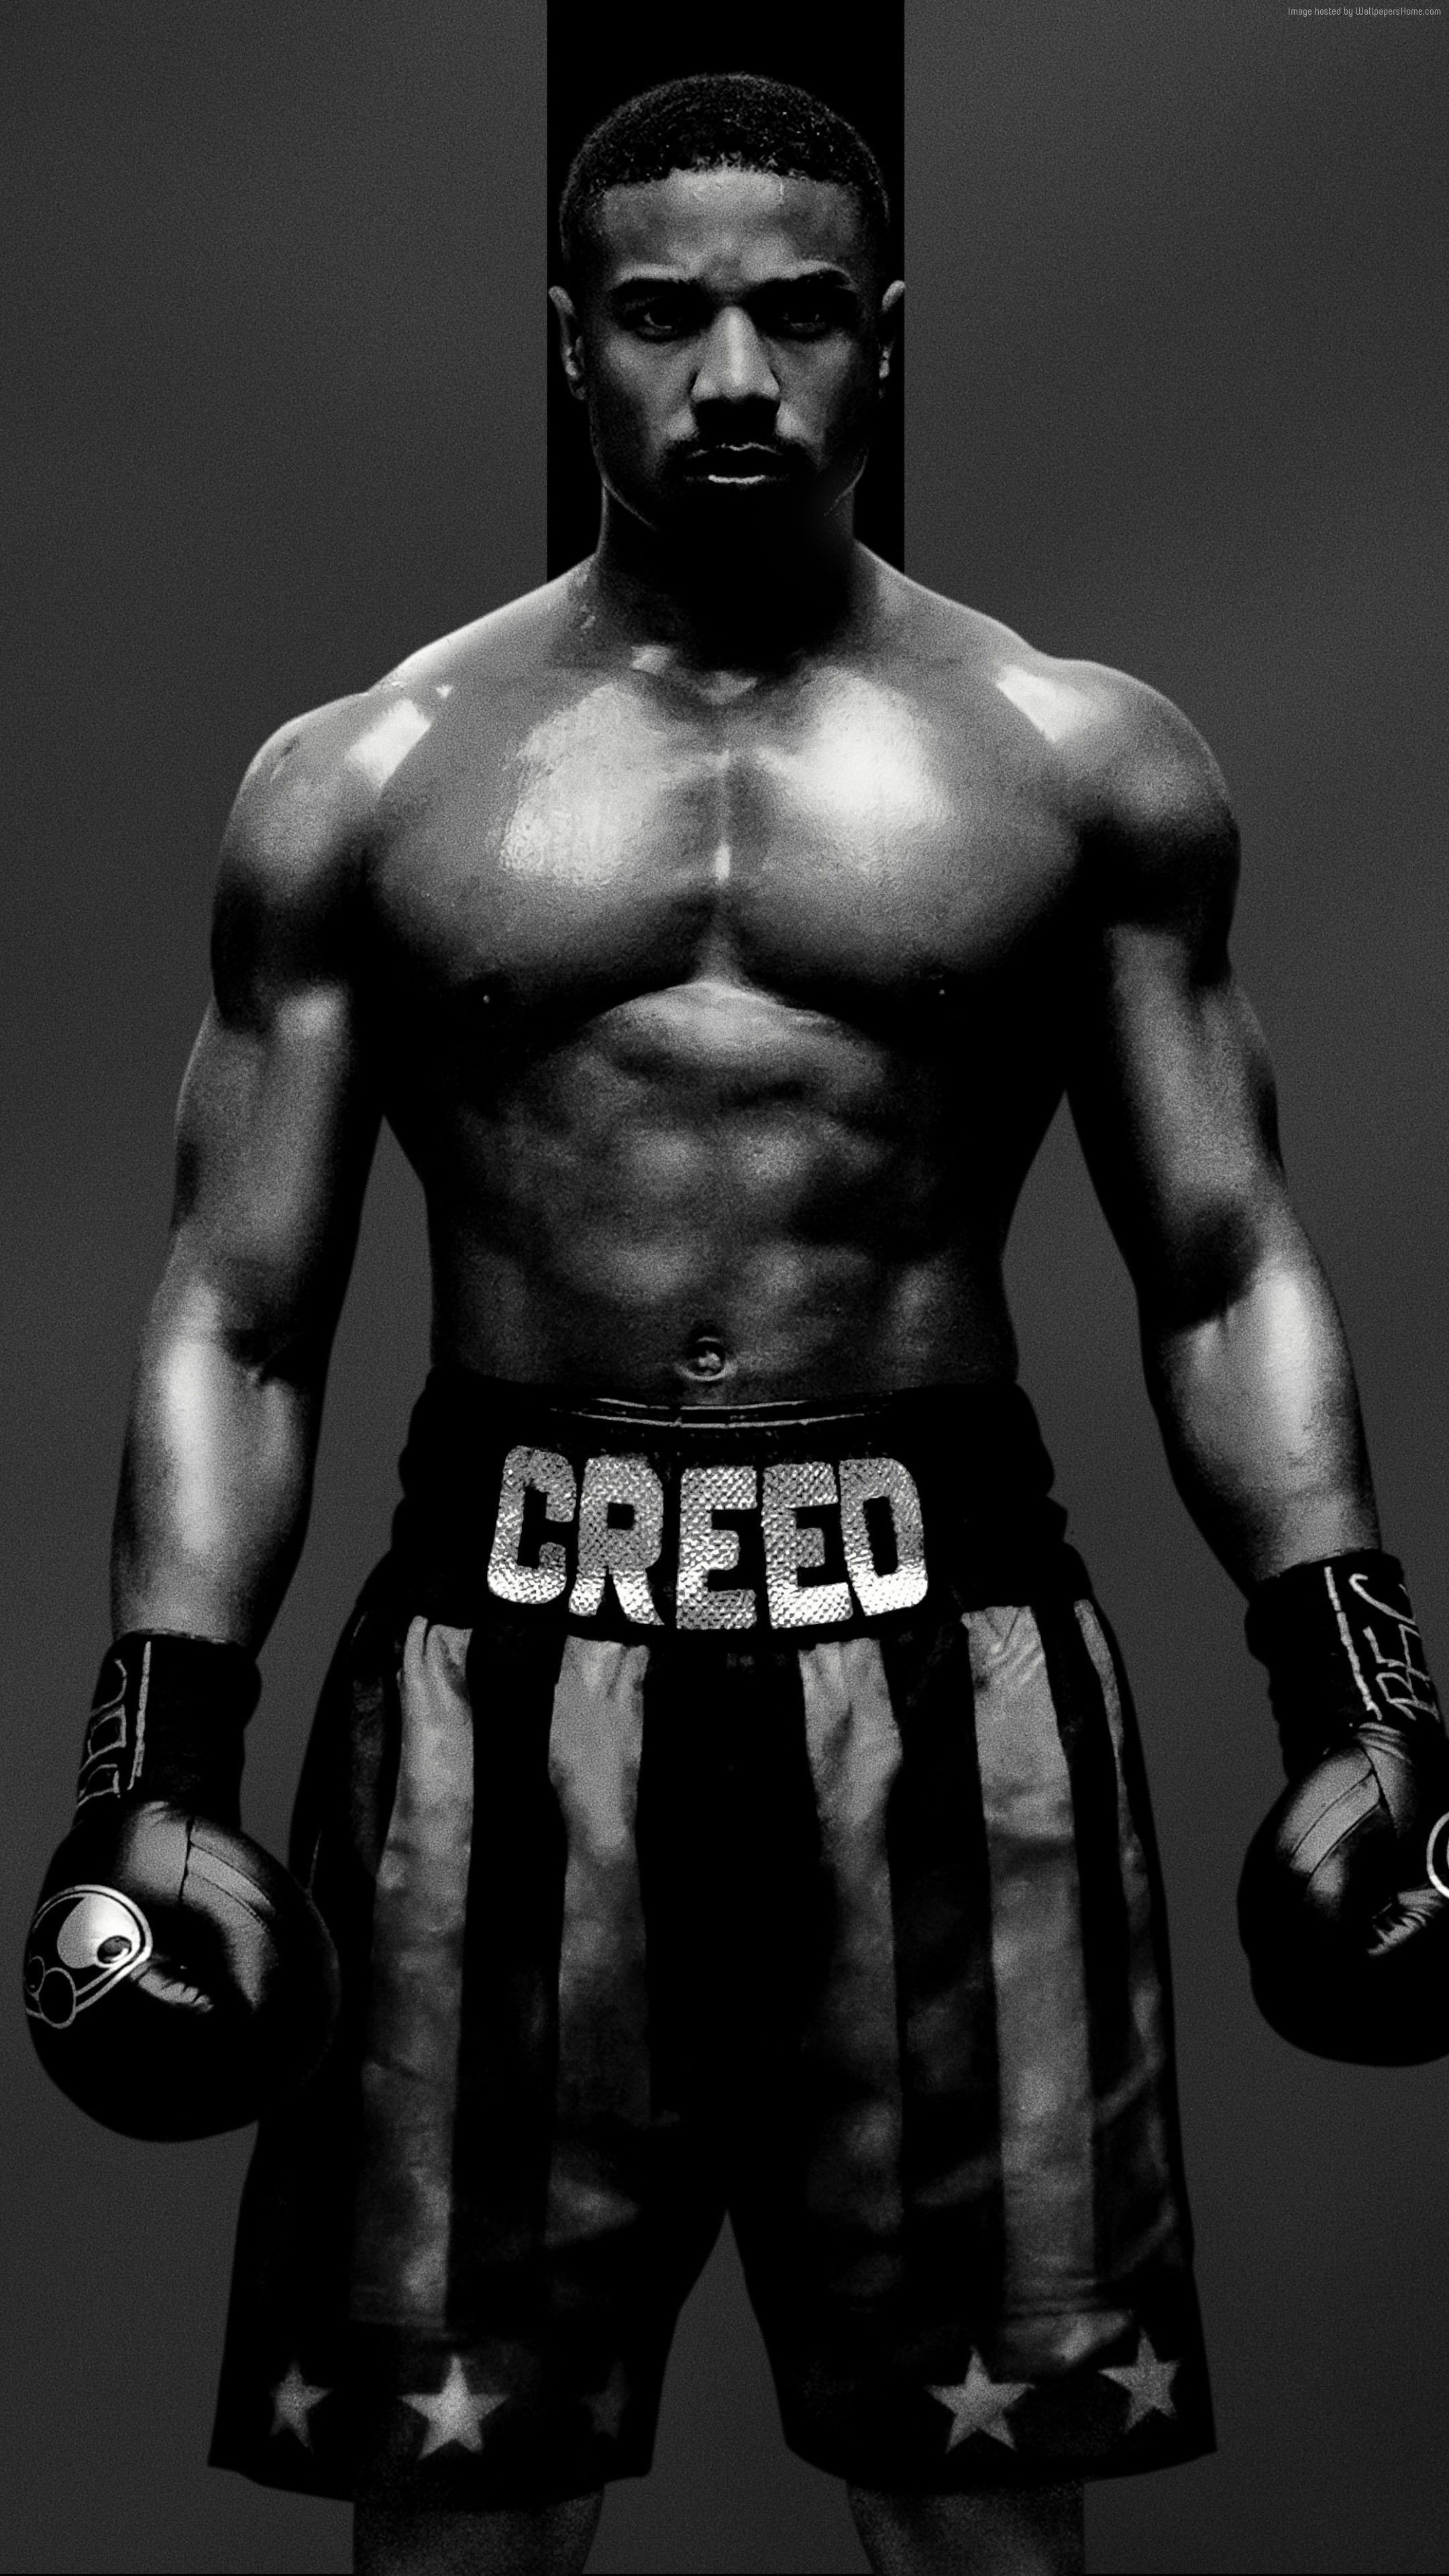 Inspirational Mike Tyson Wallpapers Boxing Adonis Johnson Creed Movie Creed Boxing